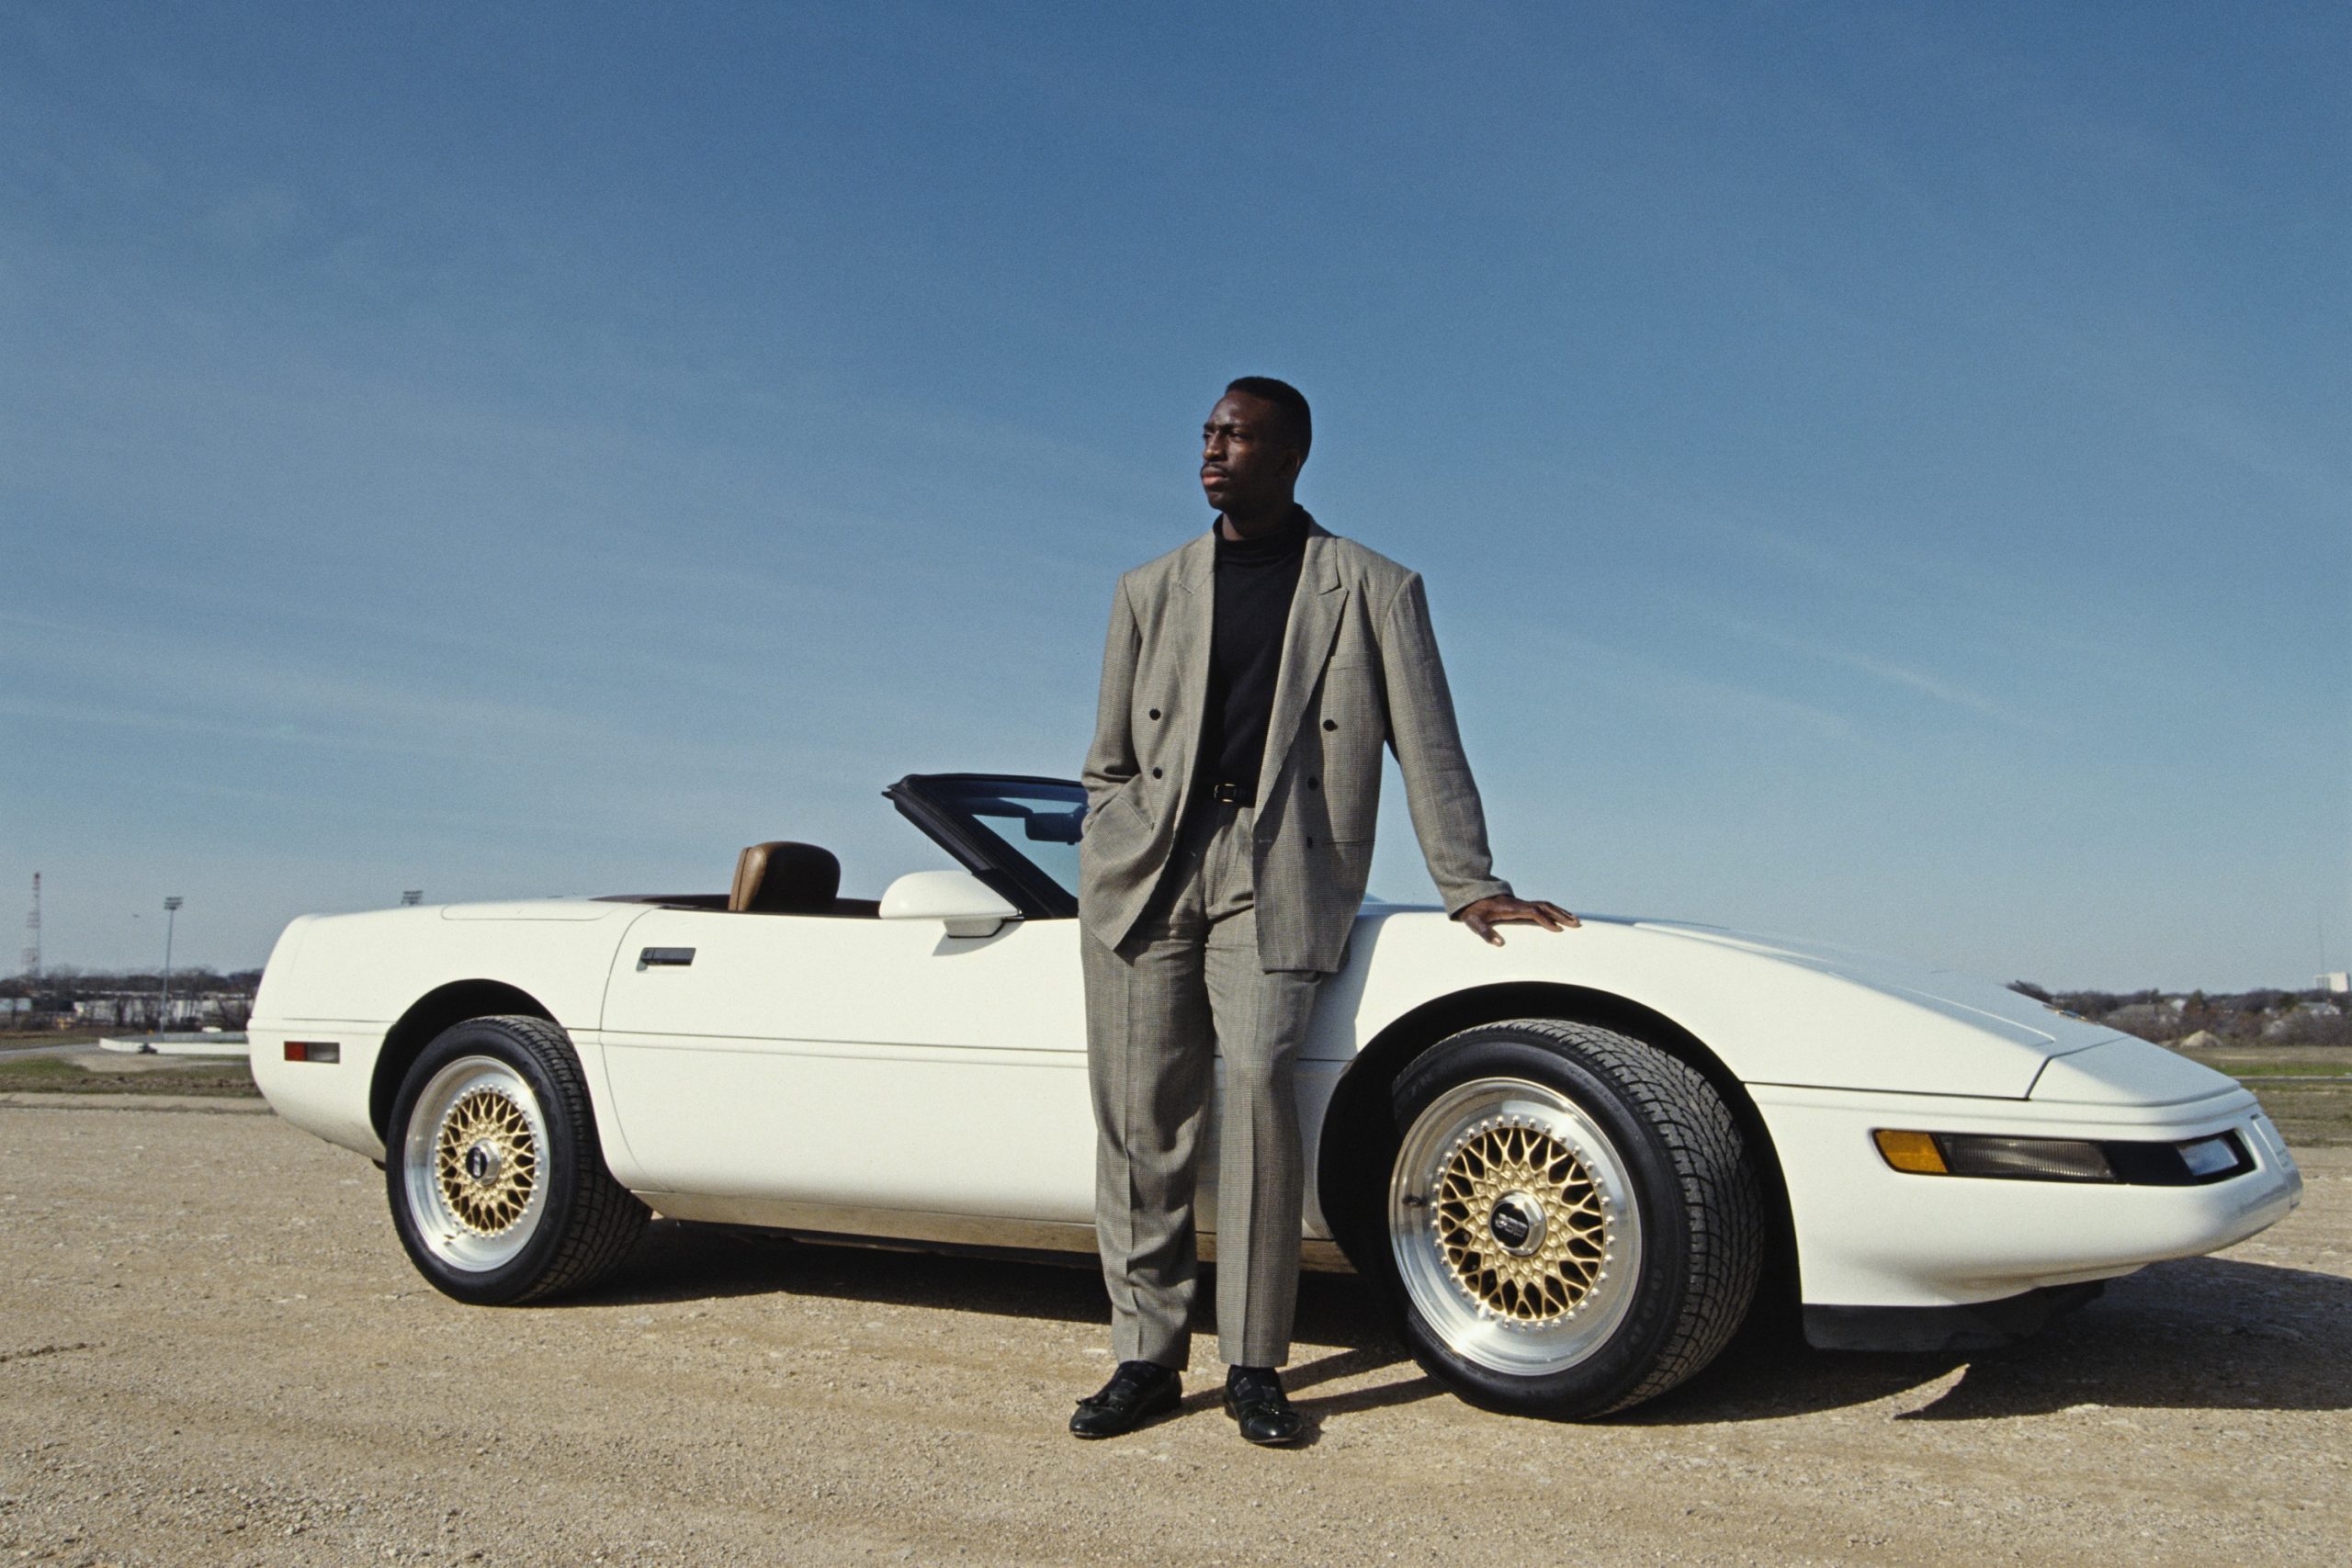 Olympic runner Michael Johnson stands in front of his white C4 convertible with BBS gold wheels